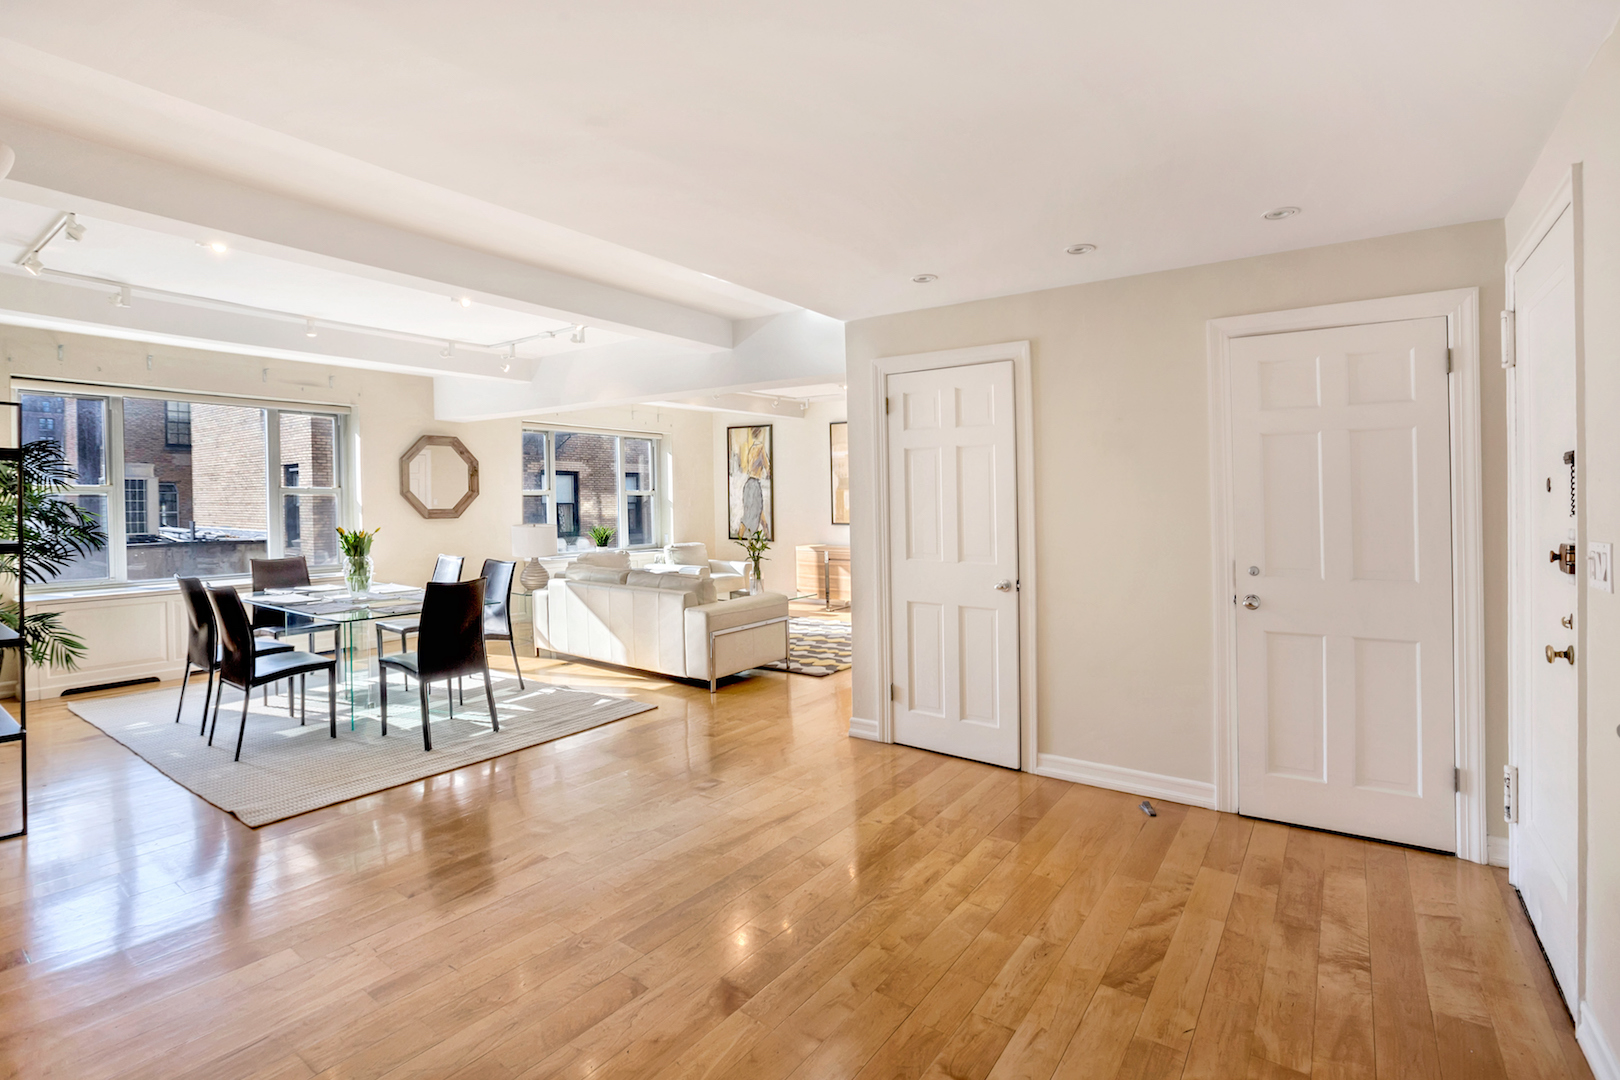 44 East 67th Street, Unit 8DE - $3,795,000